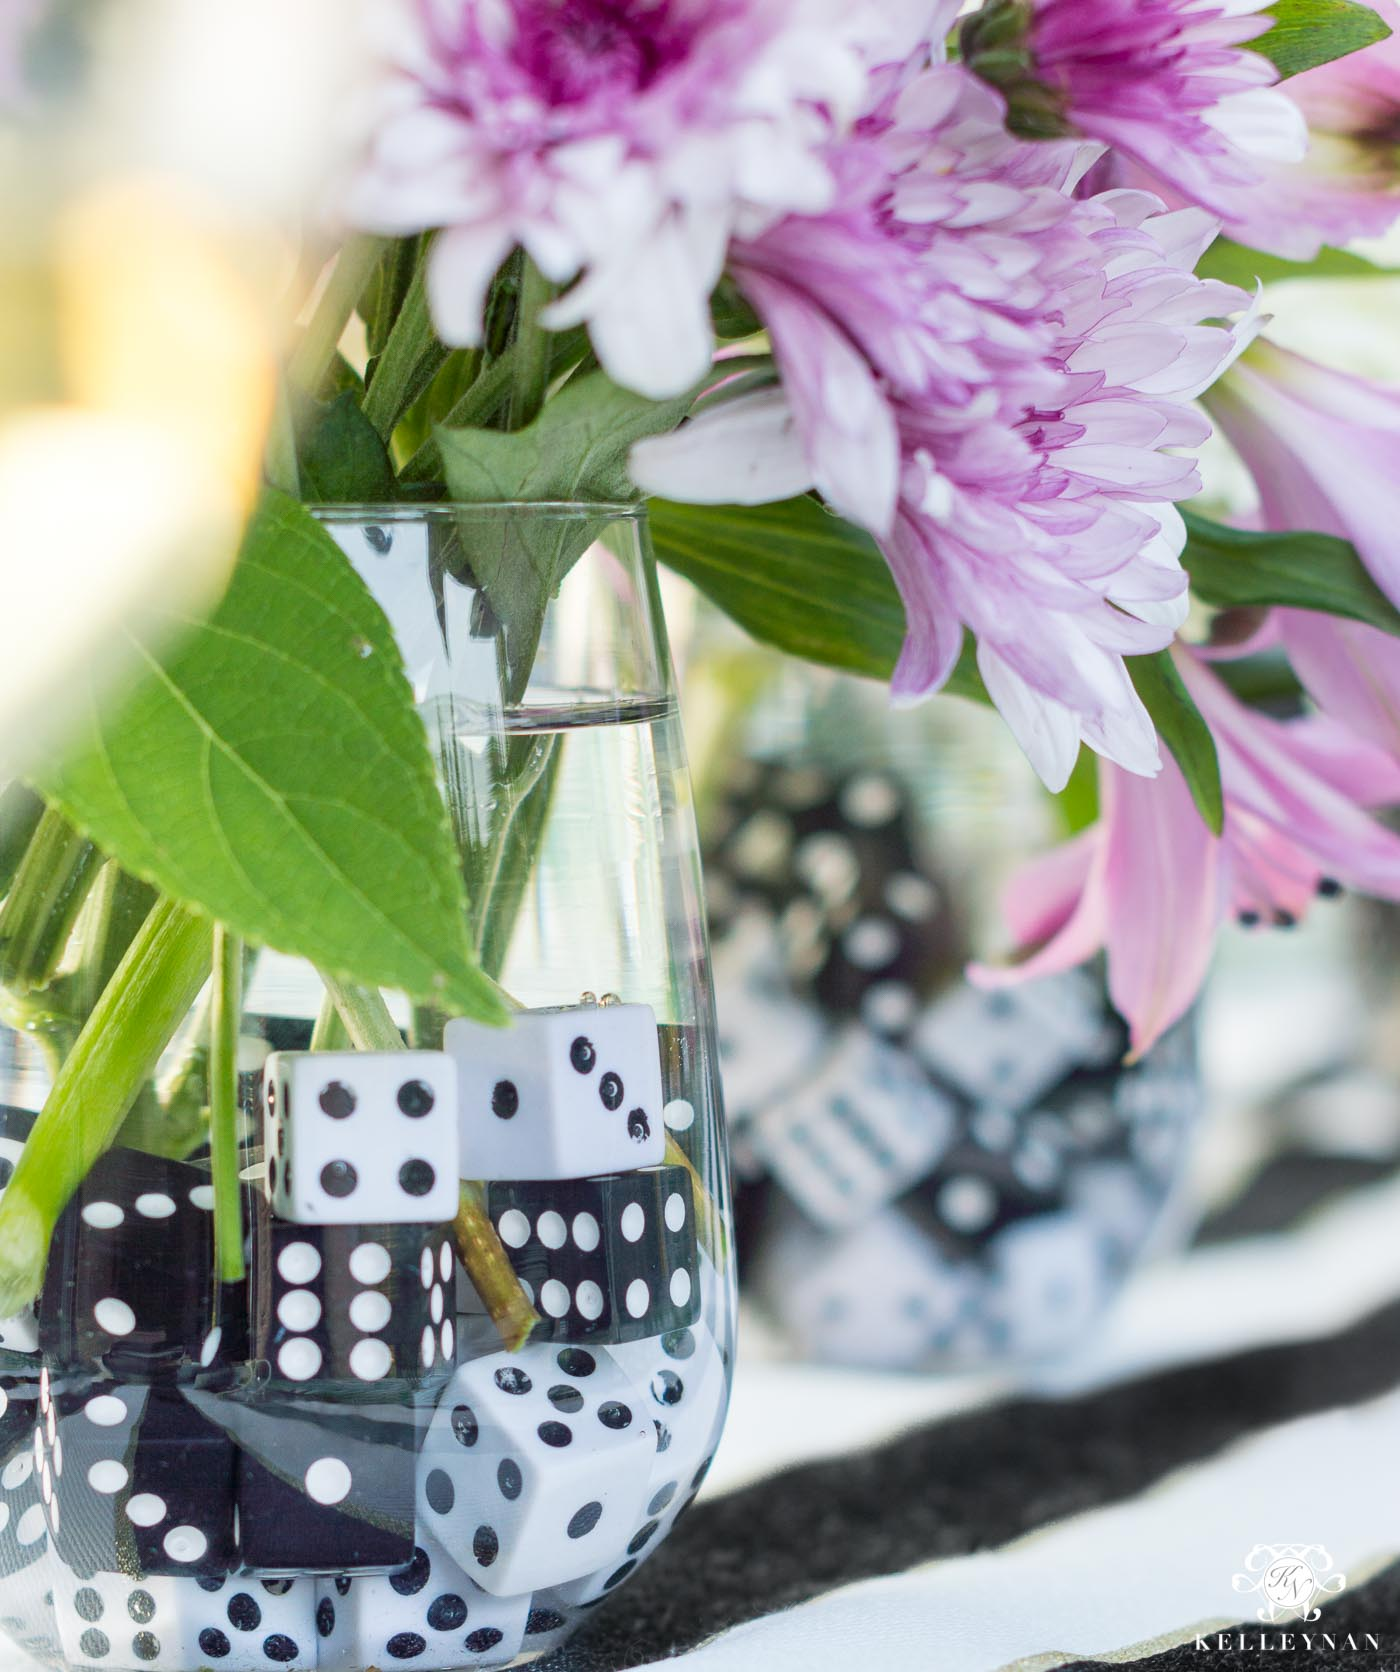 Game night flower centerpiece idea with dice as rocks in the vase